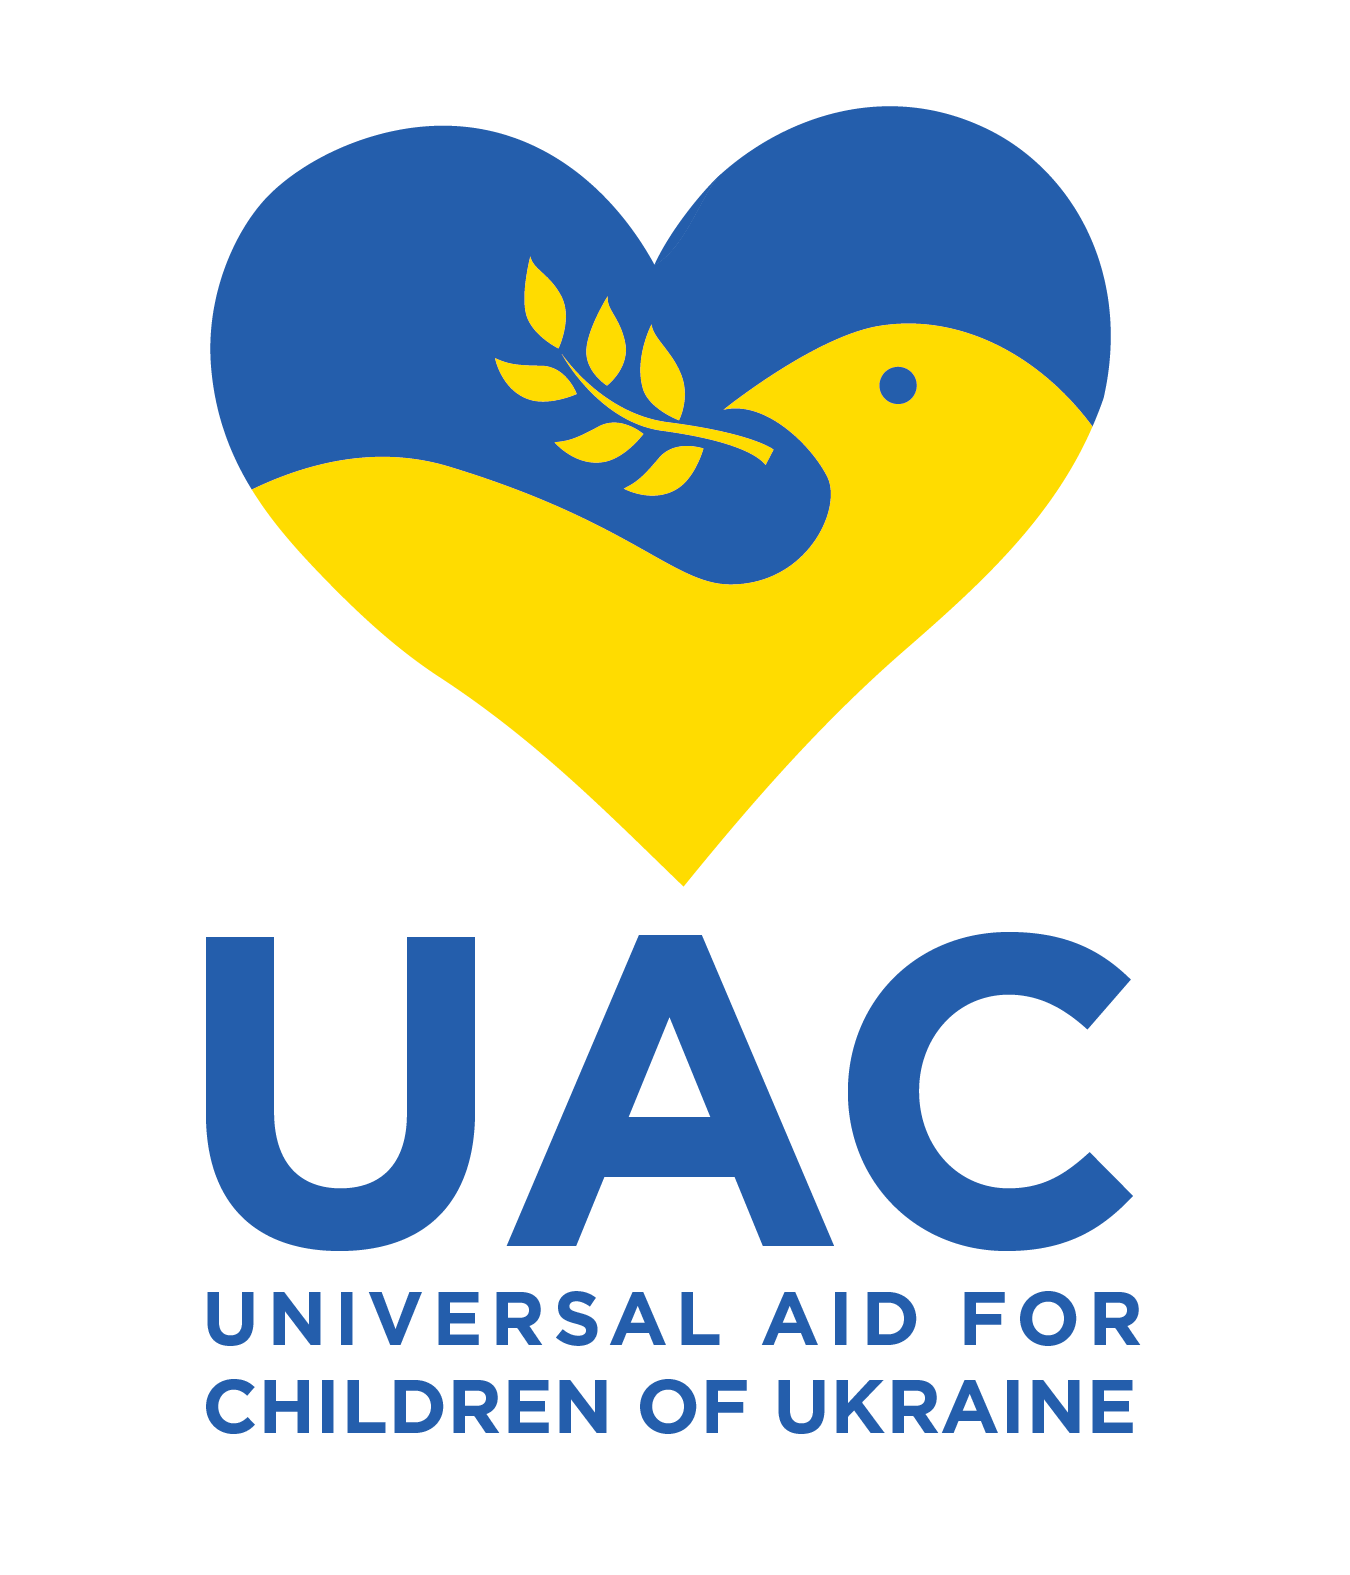 Universal Aid for Children Miami Coworking Member